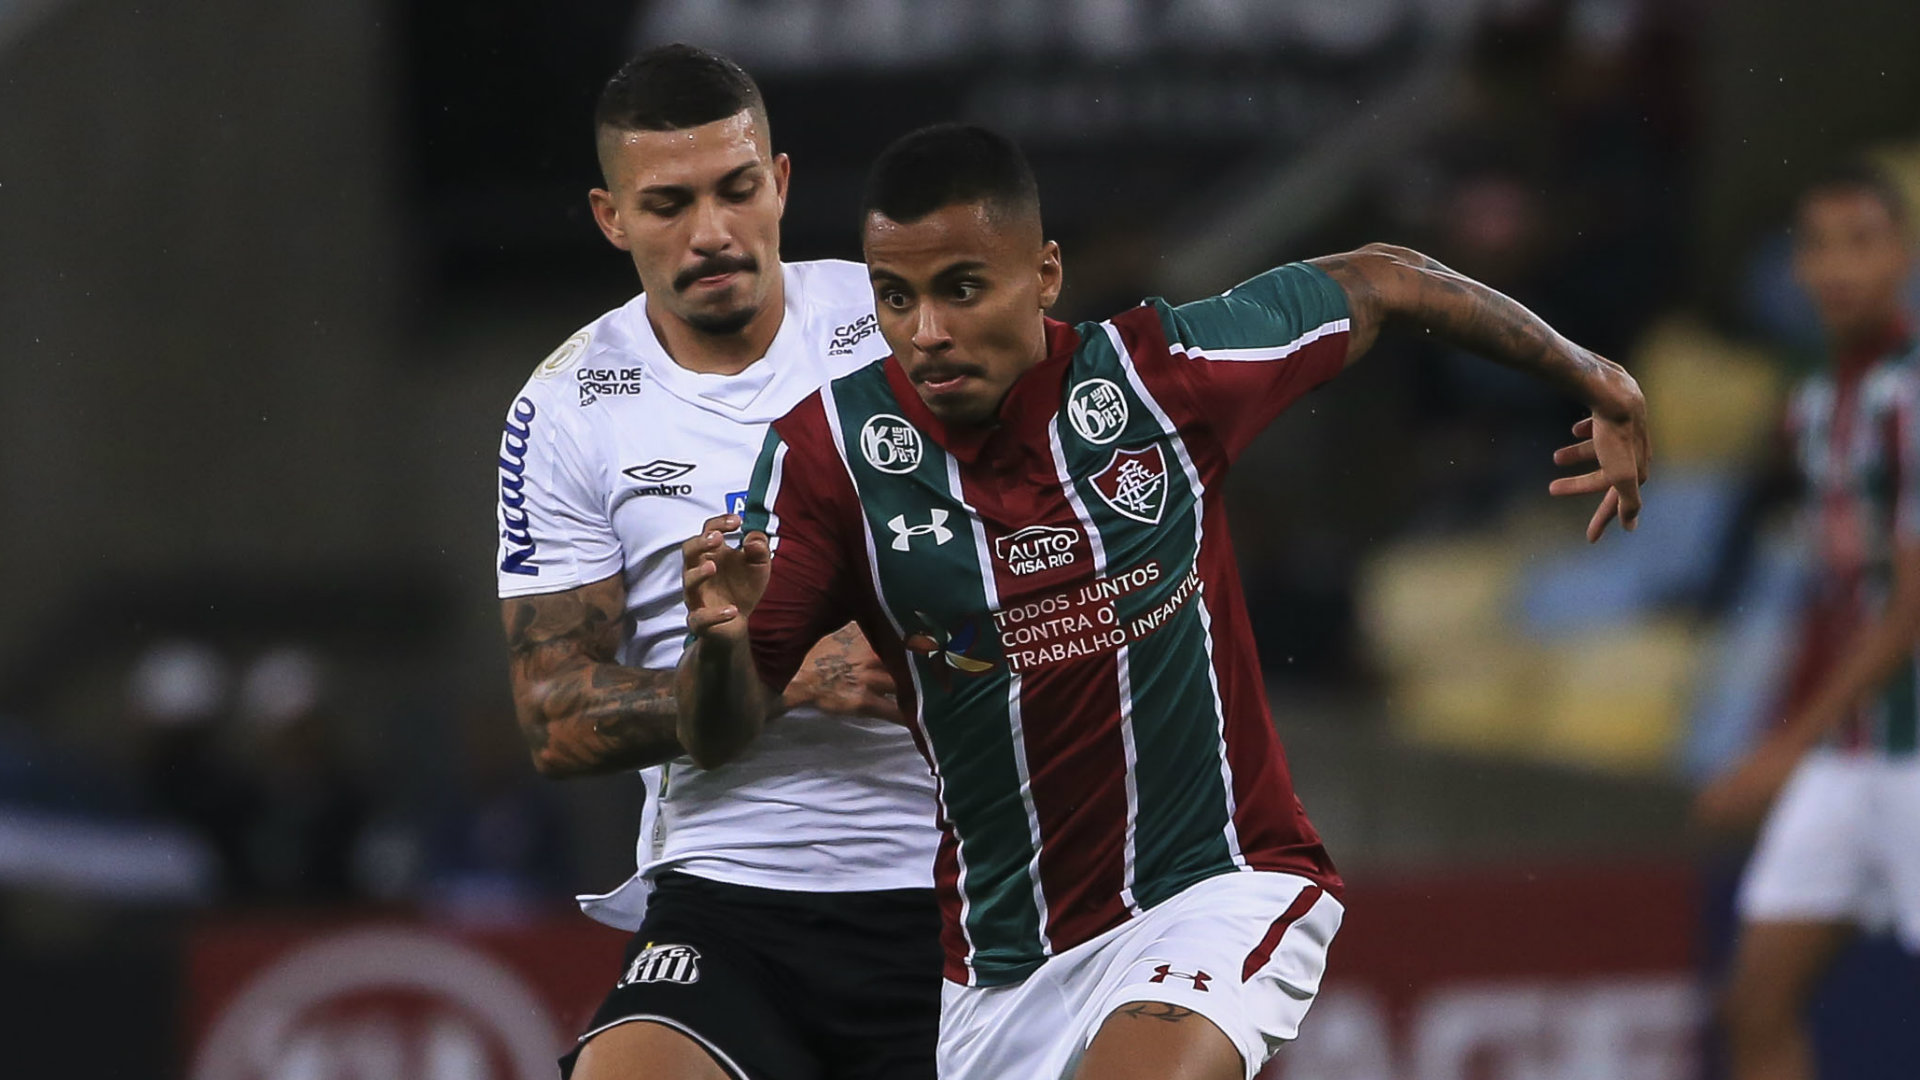 Liverpool's Allan to join Atletico Mineiro in £3.2m transfer